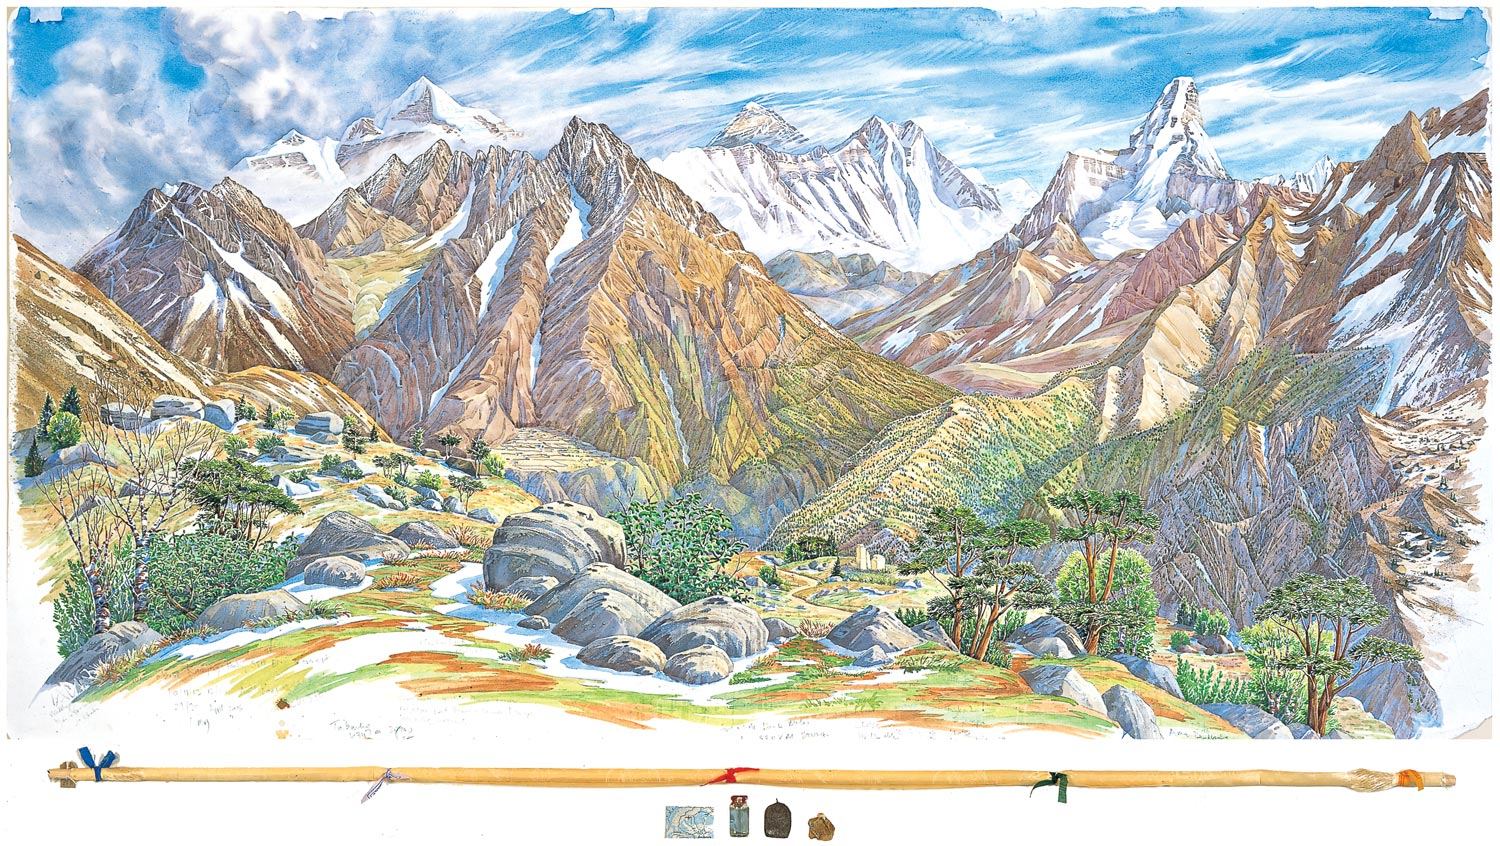 Tony Foster,  Everest, Lhotse, Nuptse, and Ama Dablam Looking NE from near Syangboche , 2006     Watercolor and graphite on paper, mixed media     35 7/8 x 72 in. / 4 1/8 x 68 3/4 in.   2004.1.23